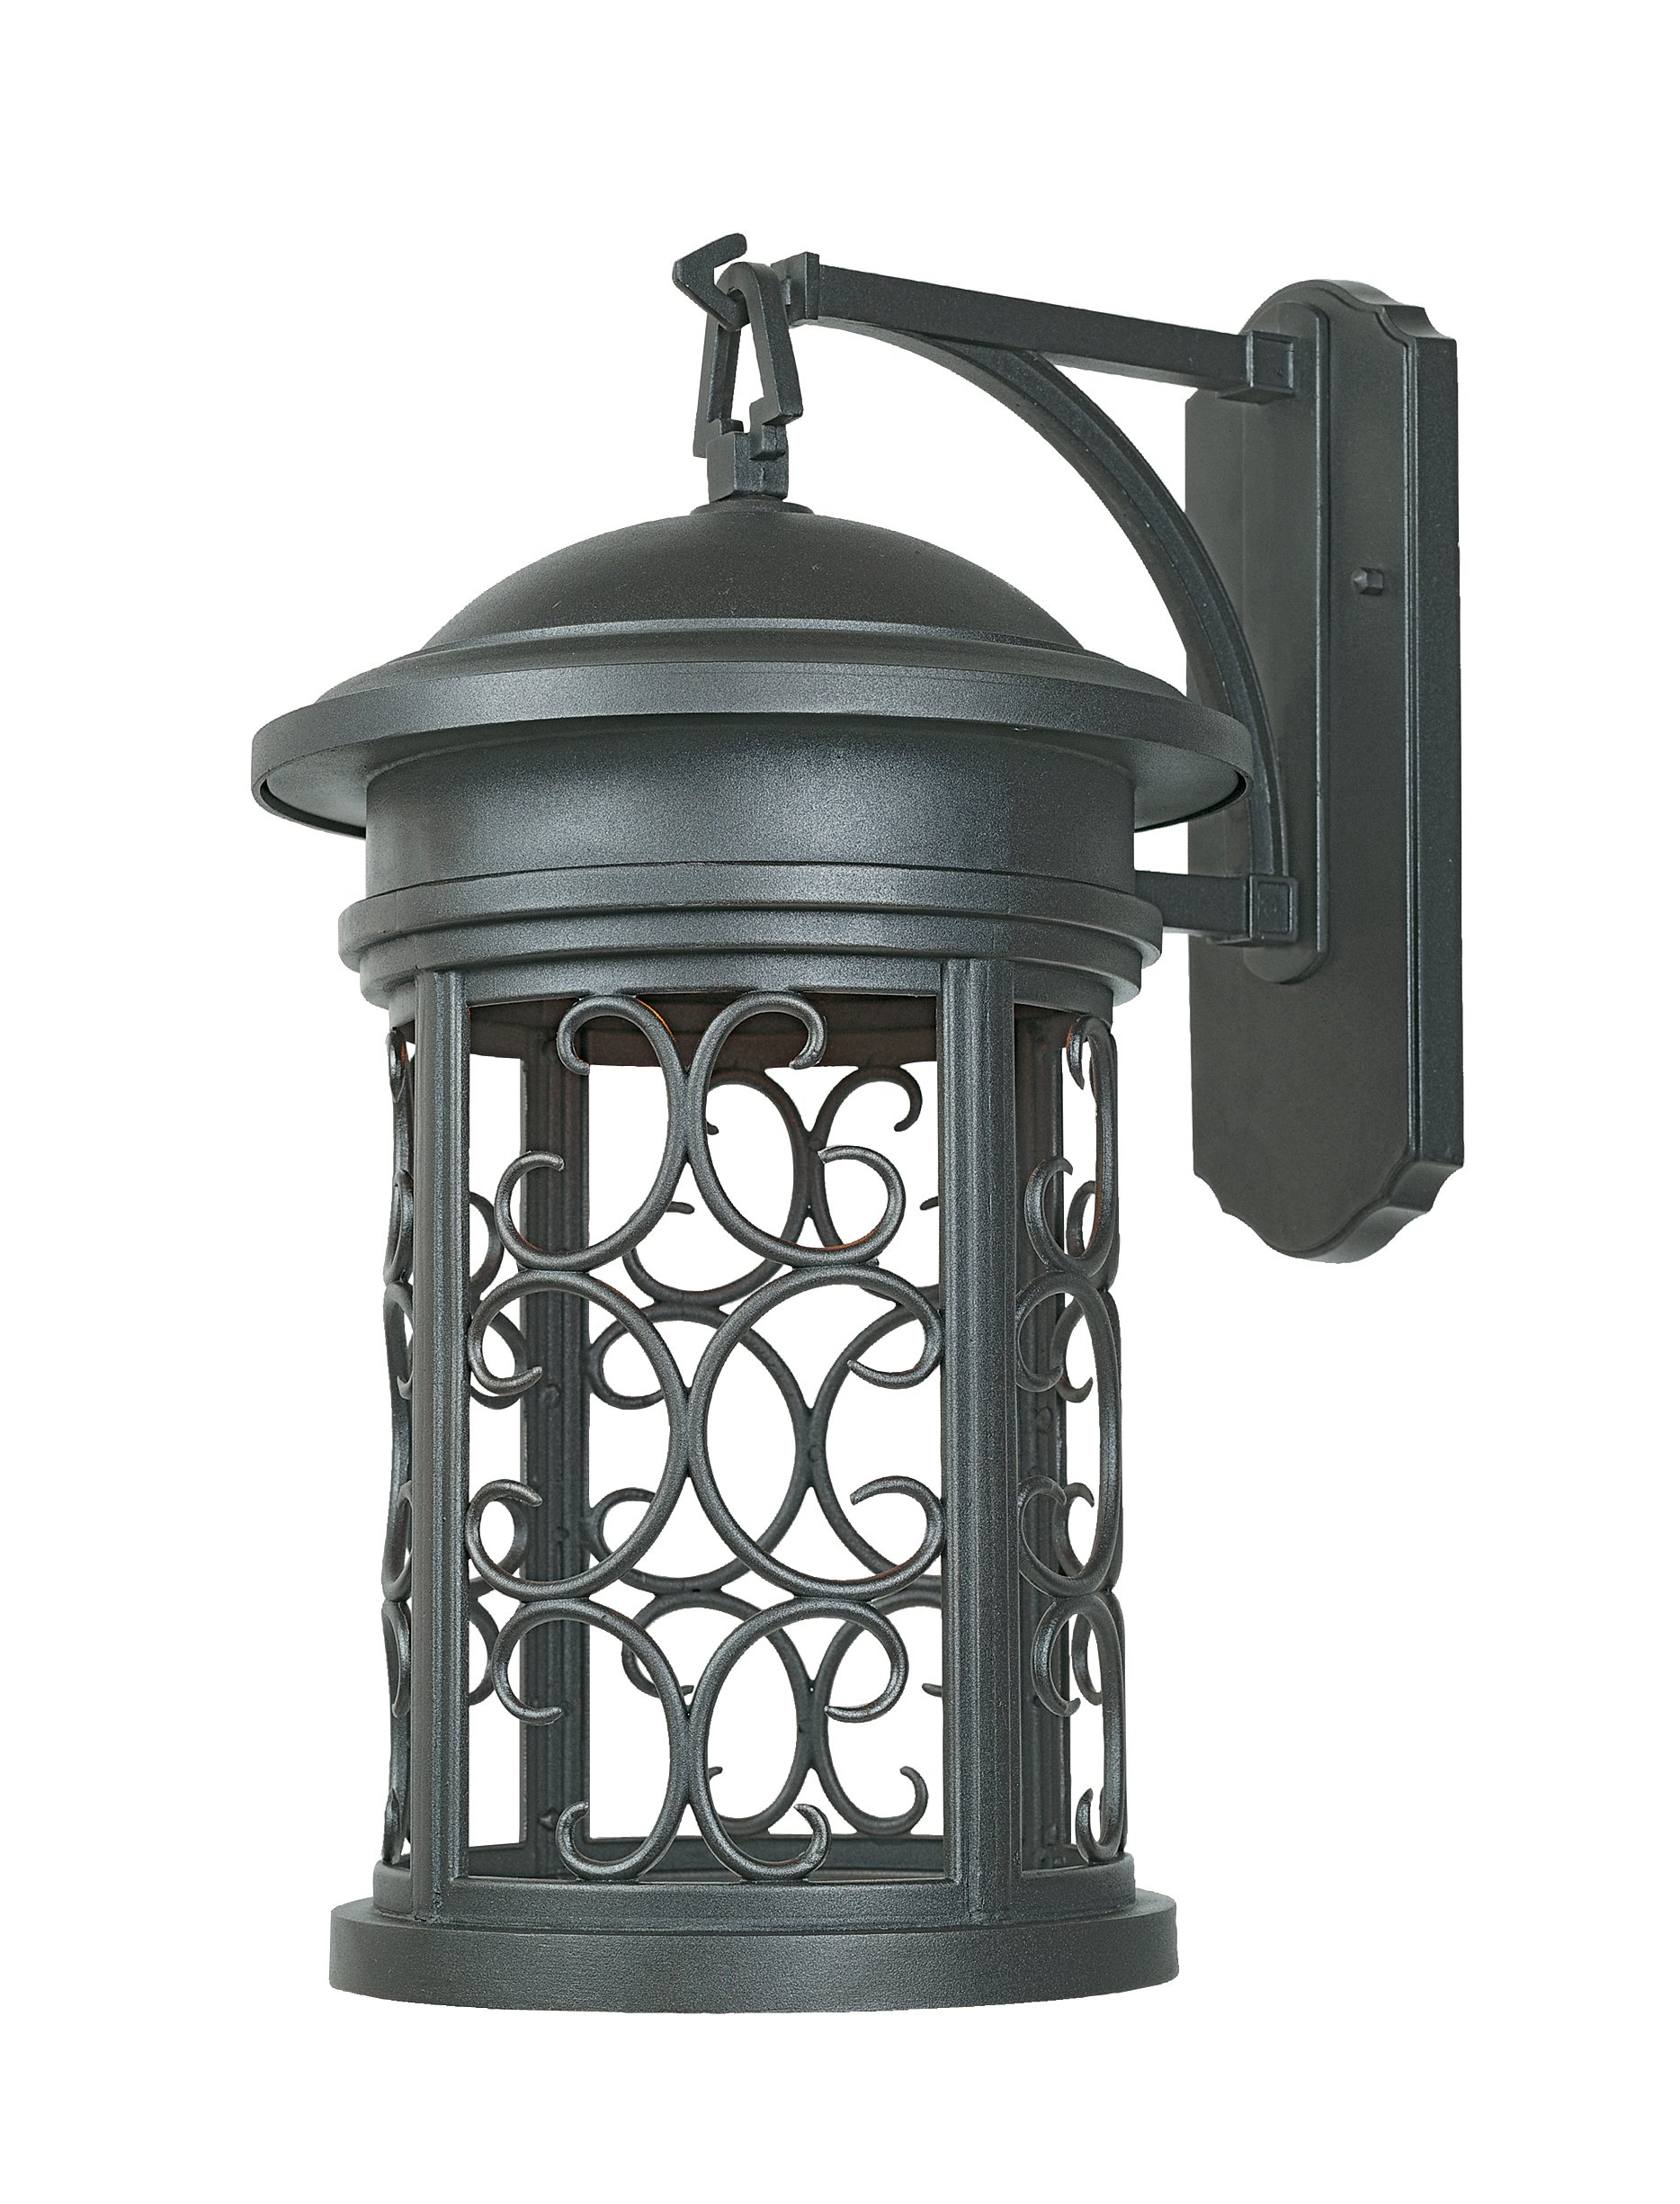 Designers Fountain 31131-ORB Ellington-DS Wall Lanterns, Oil Rubbed Bronze